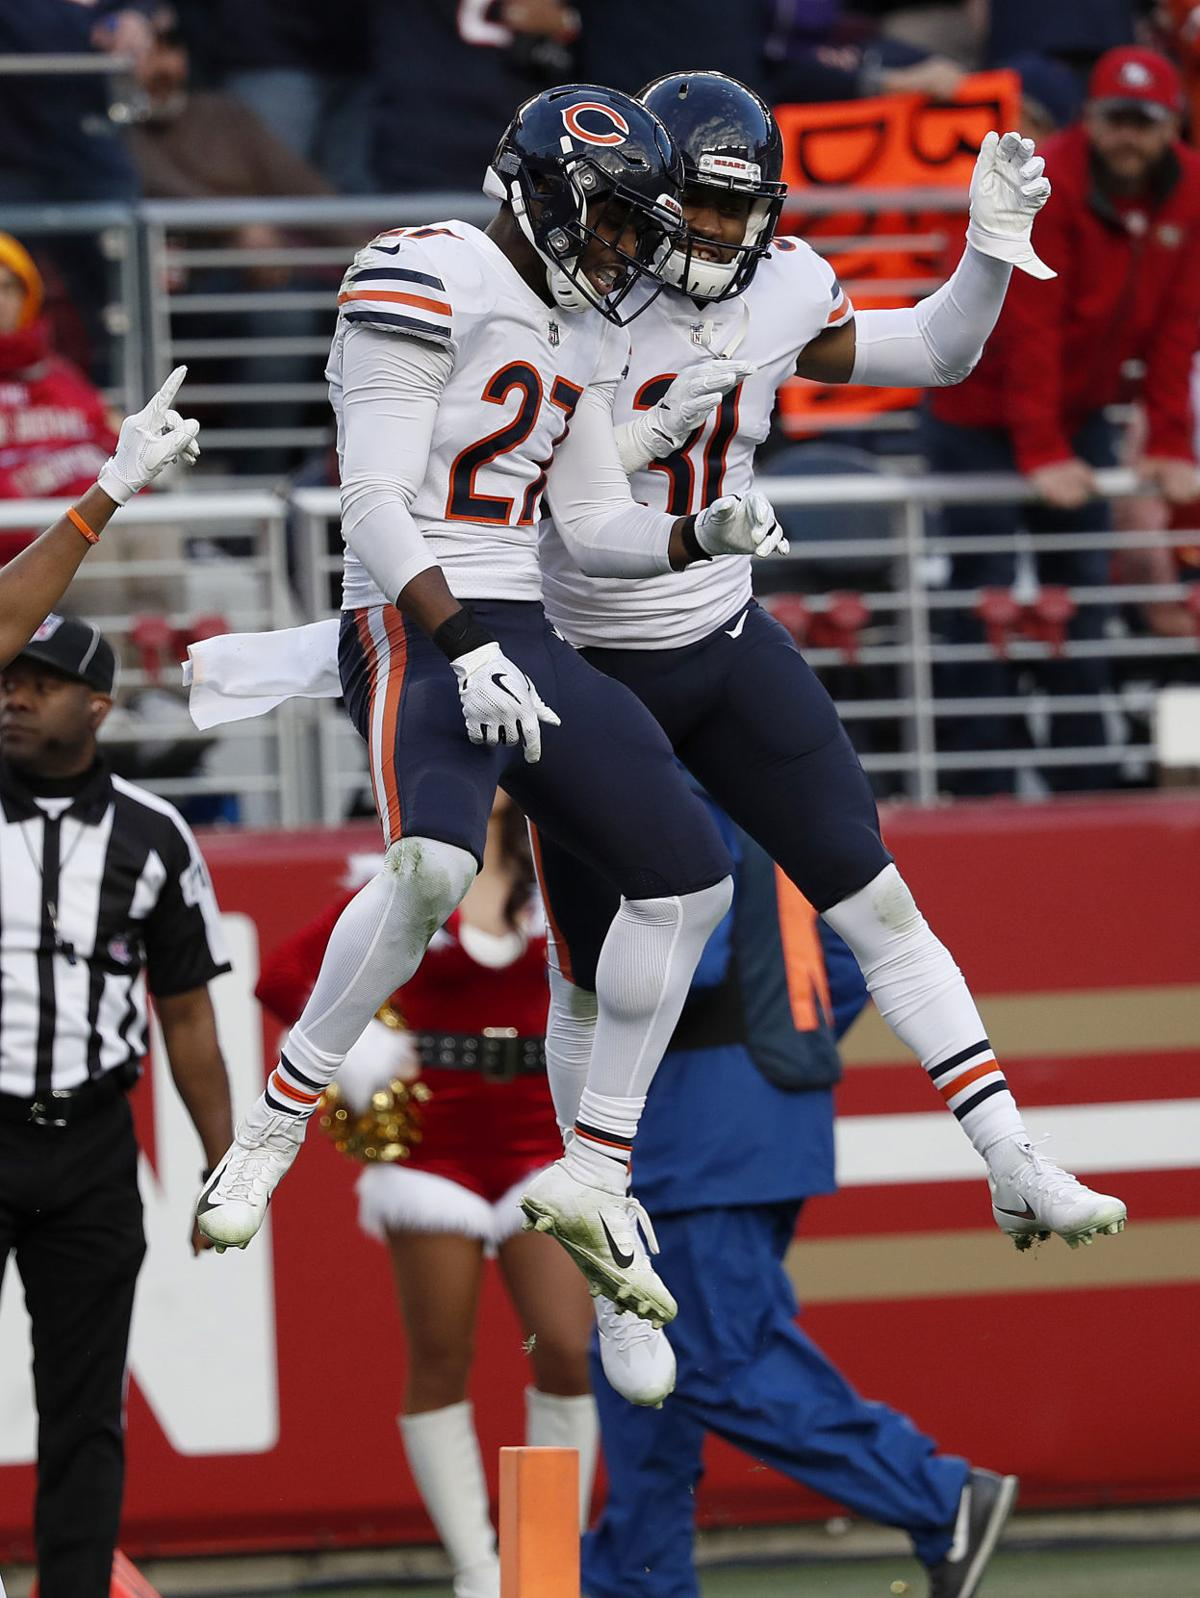 eed49272 UPDATE: Bears clinch at least No. 3 seed with 14-9 win over 49ers ...